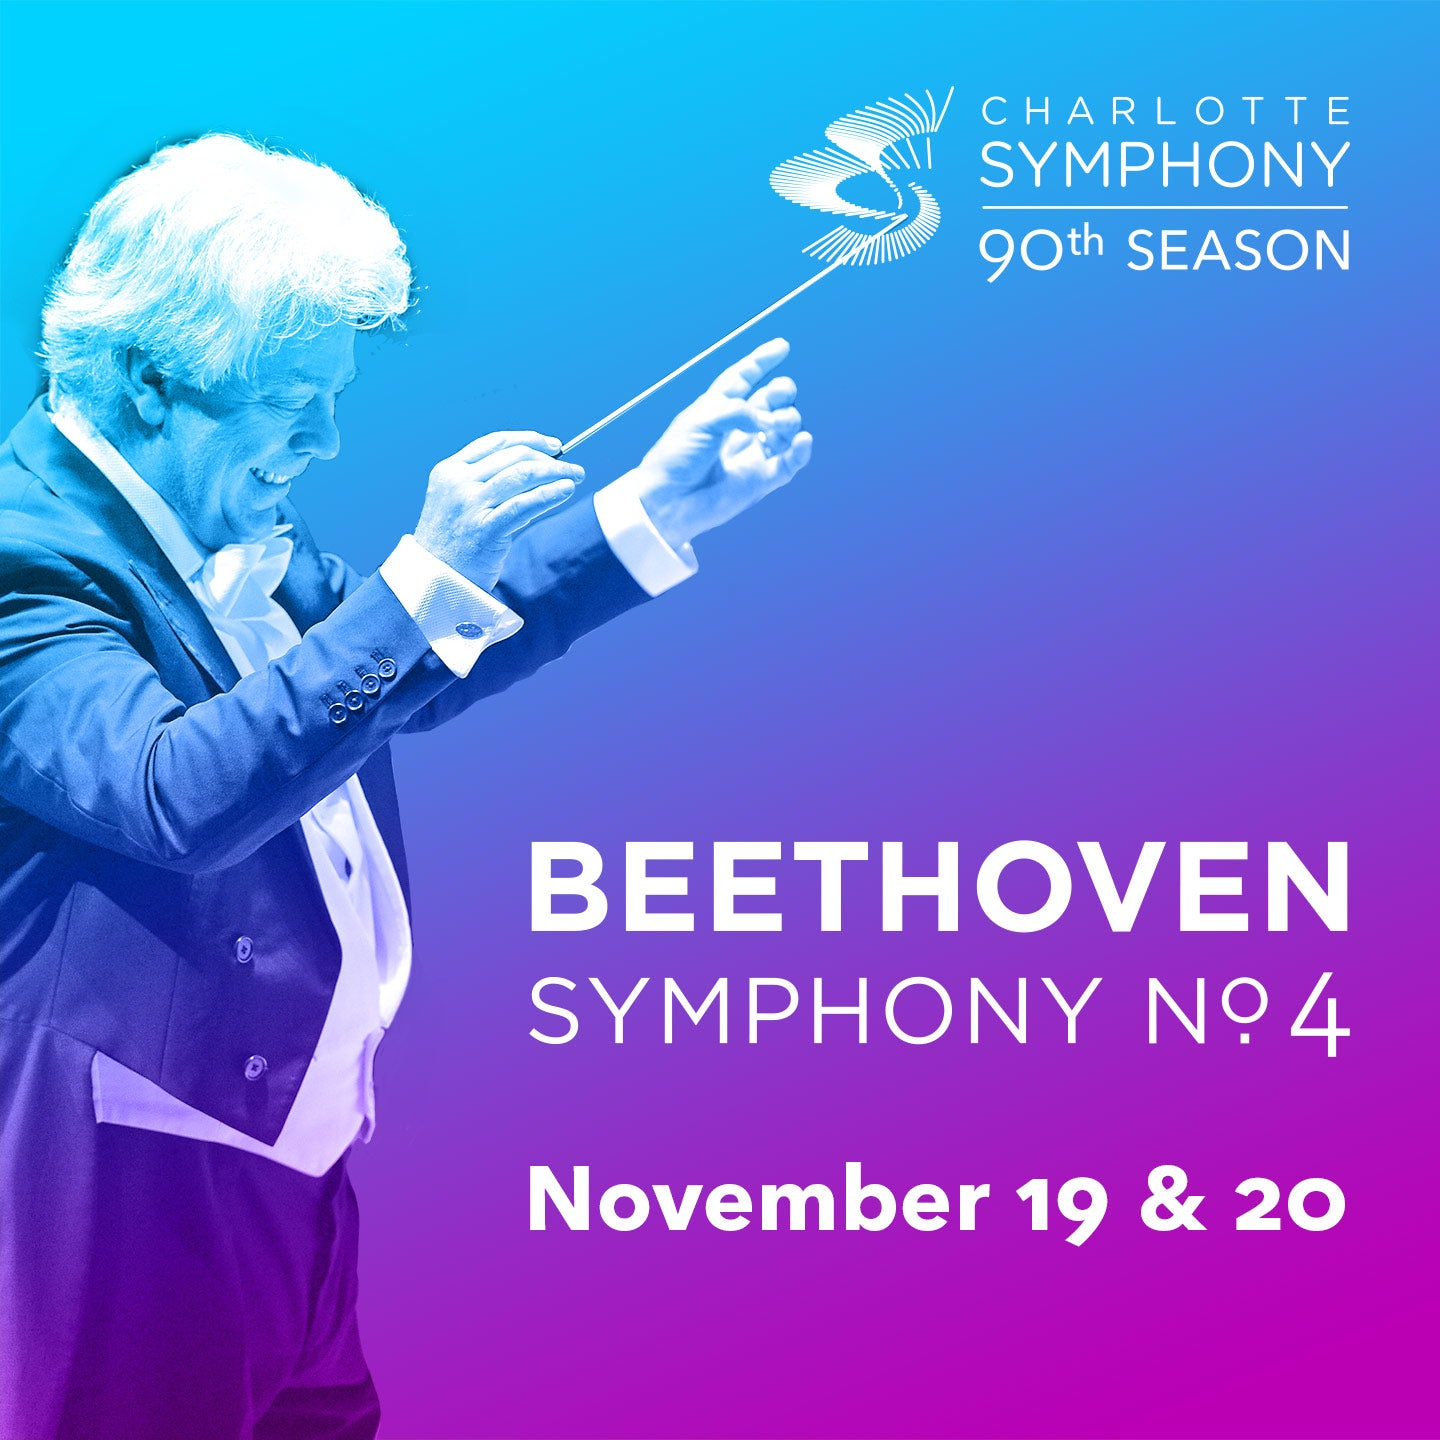 Charlotte Symphony Orchestra Presents Beethoven 4